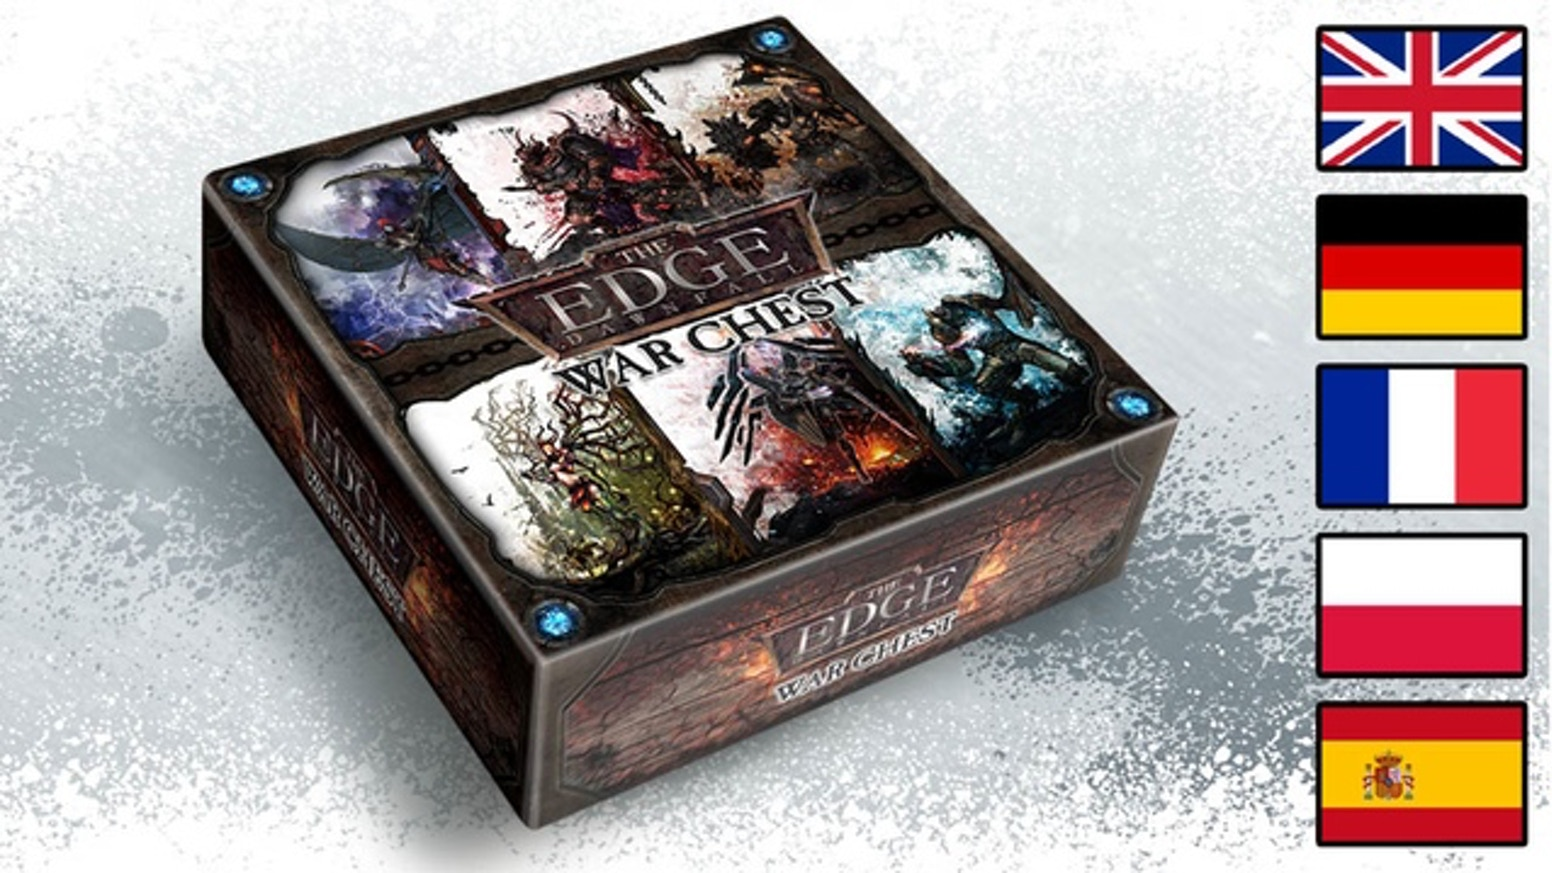 Next level competitive miniature Board Game for 1-4 players from creator of Neuroshima Hex and Cry Havoc.